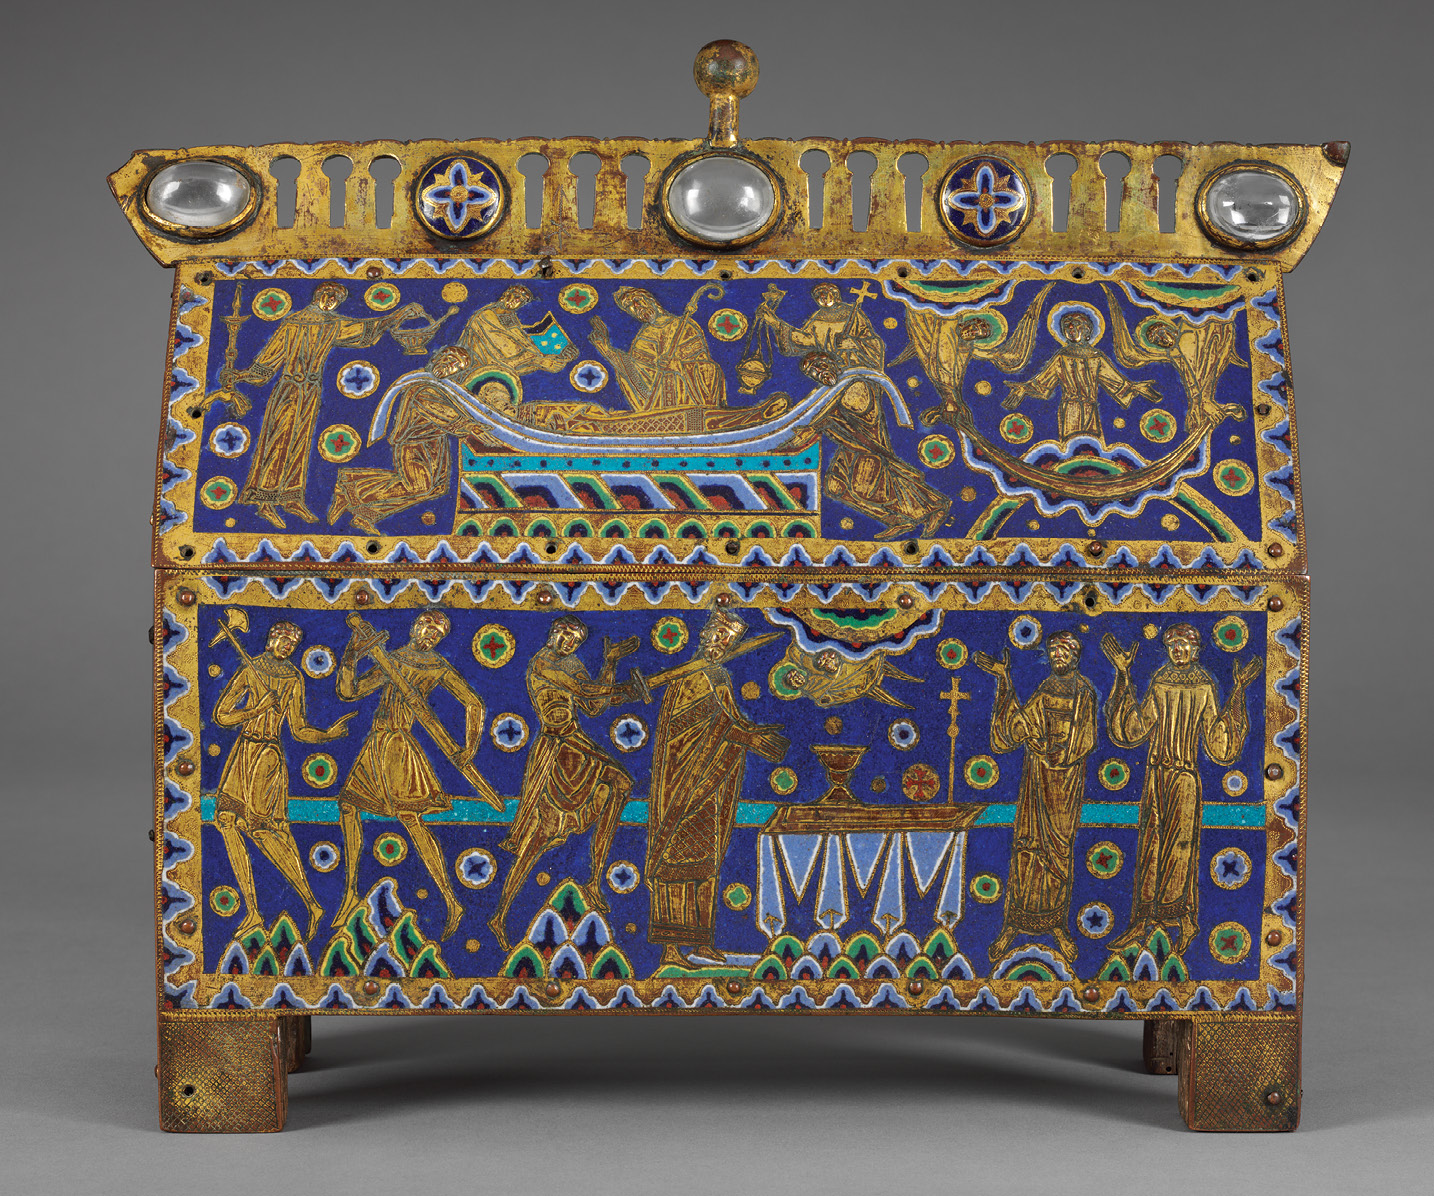 above The Becket Casket, c.1180-1190, depicts Becket in the act of celebrating Communion, thus reinforcing the sacrilegious nature of his martyrdom. It was made to house a precious relic perhaps a scrap of Becket's clothing and was one of hundreds manufactured in the Limoges enamel workshops, of which some 50 have survived.